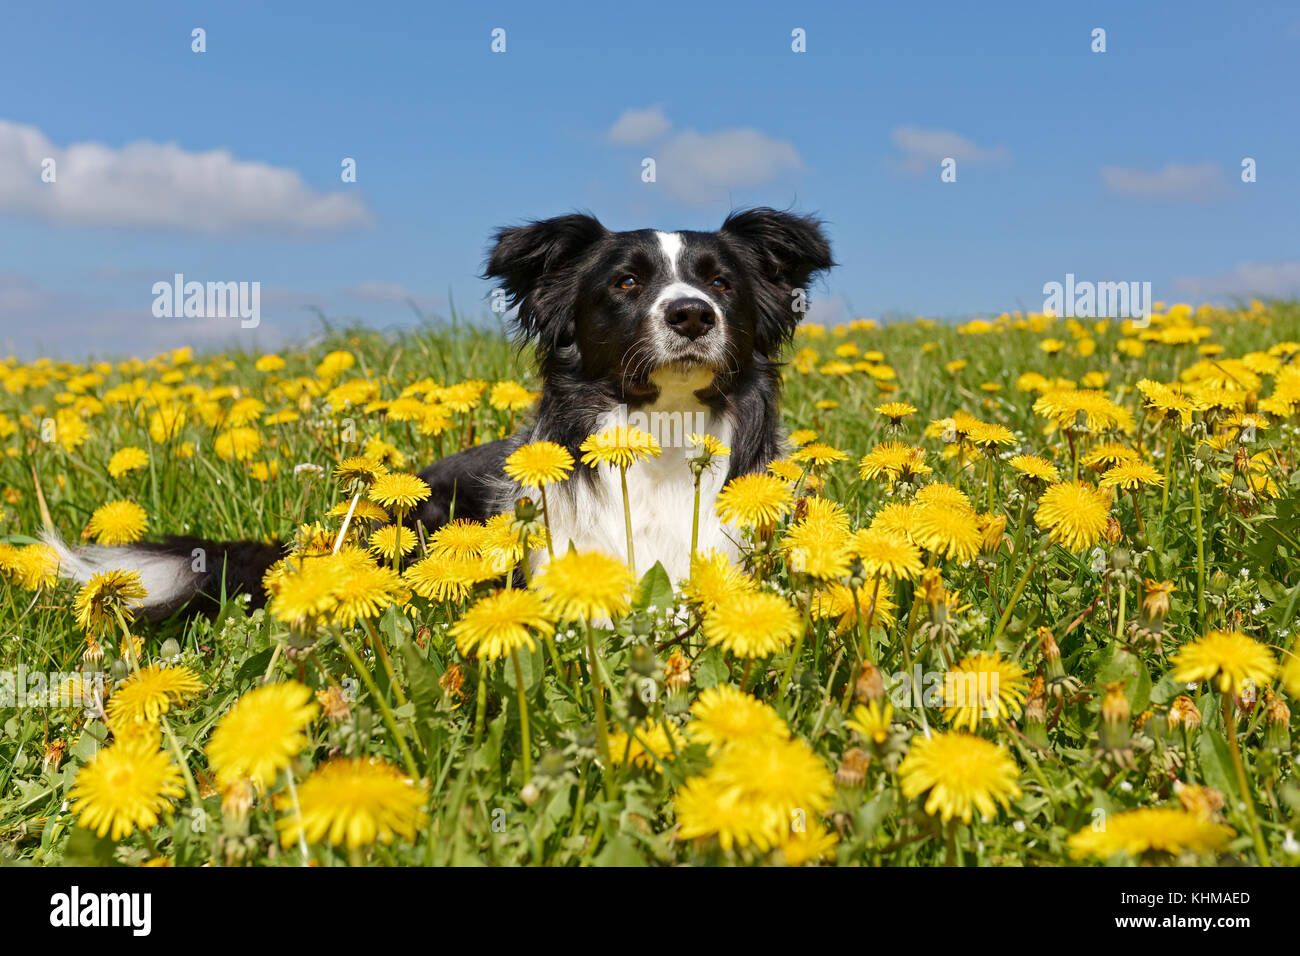 Border collie, lies in a meadow with dandelions, Germany, Europe - Stock Image